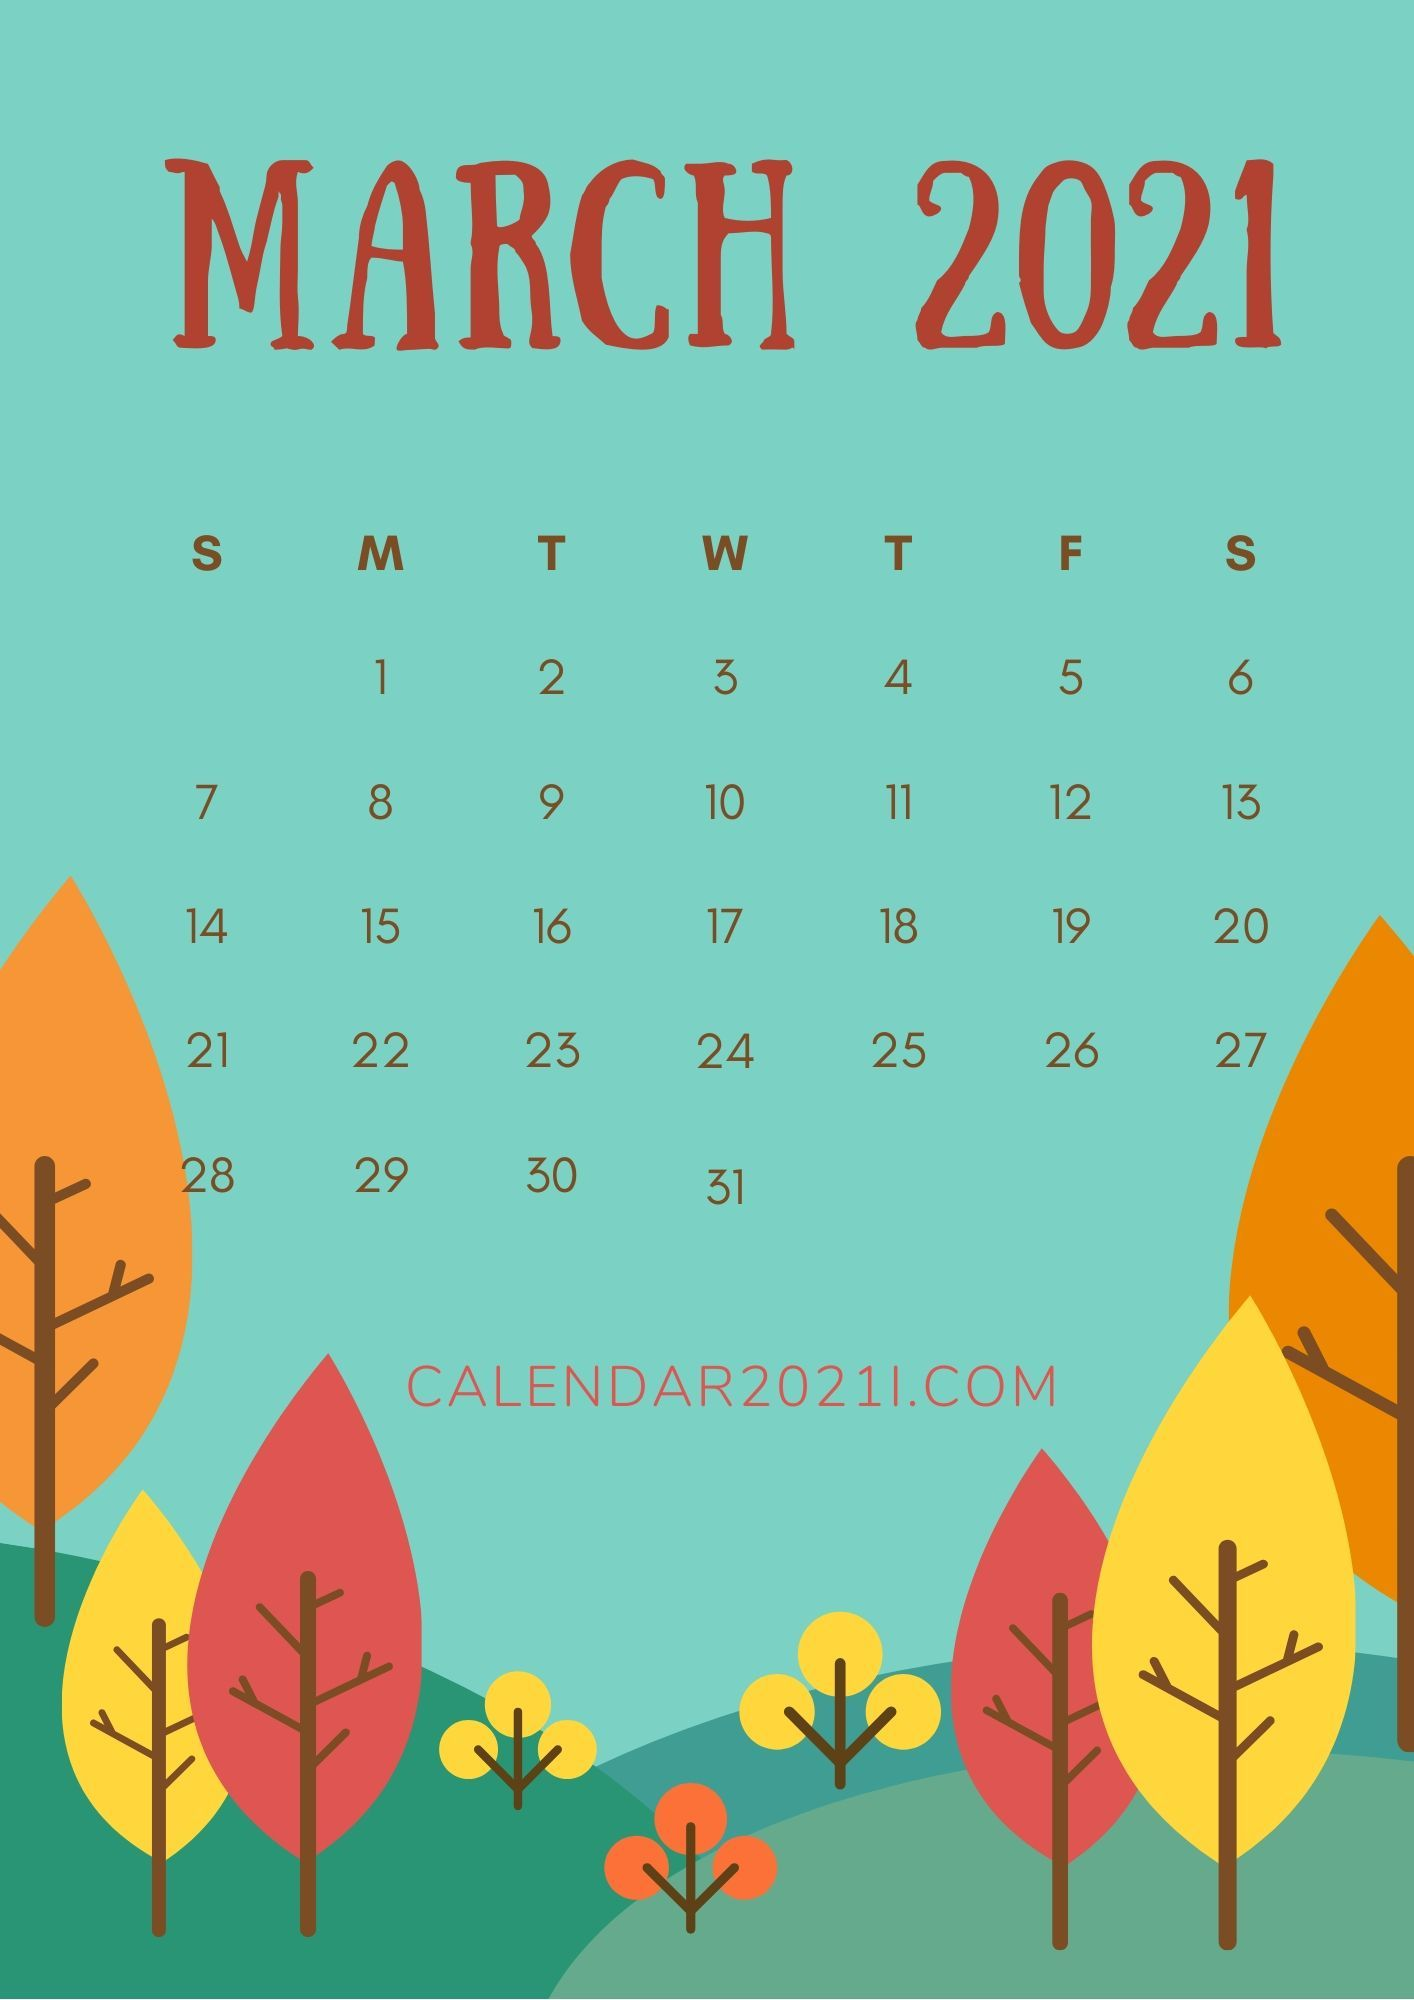 March 2021 Calendar iPhone HD Wallpaper for mobile's